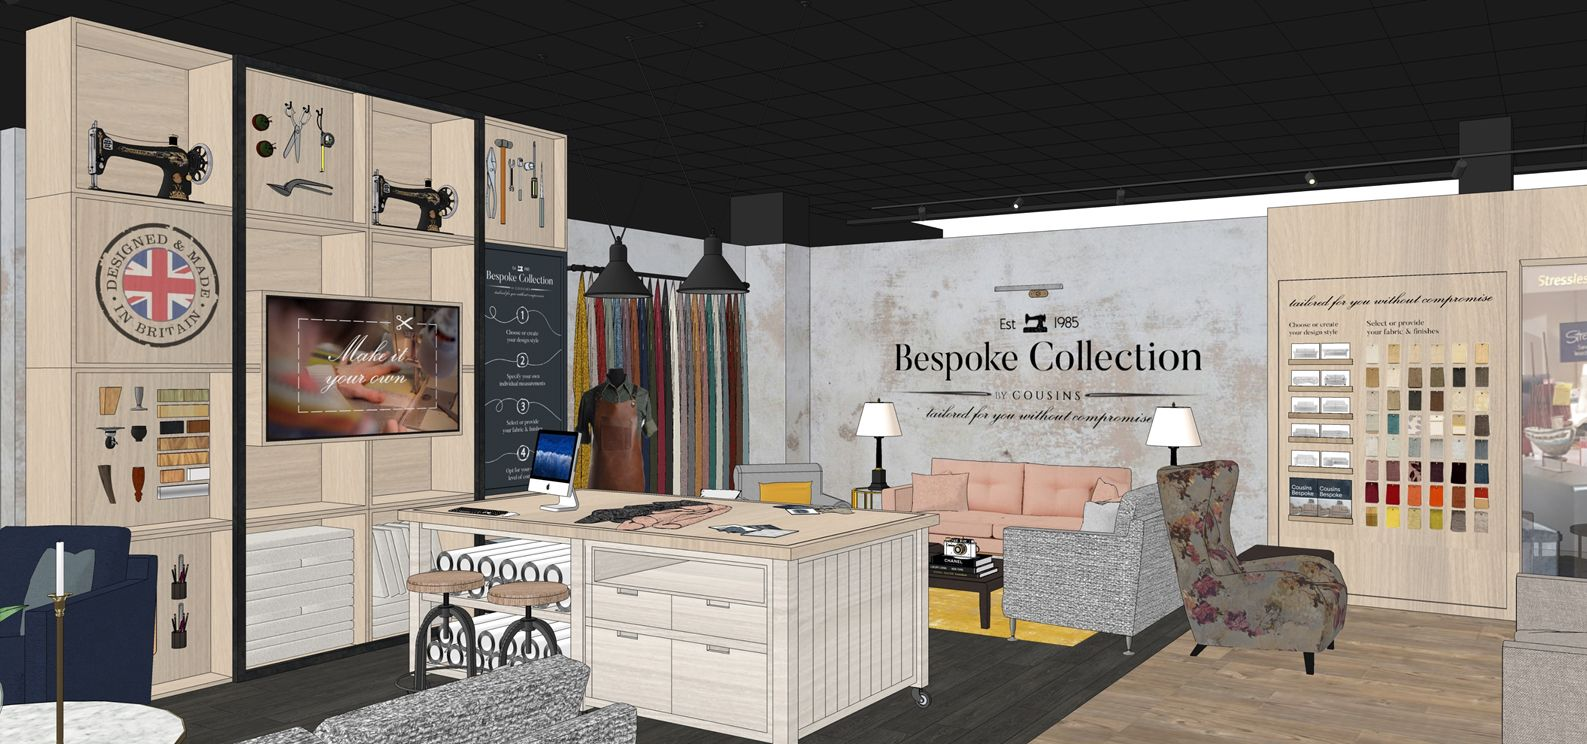 Design Proposals For Specialist Bespoke Area Within Furniture